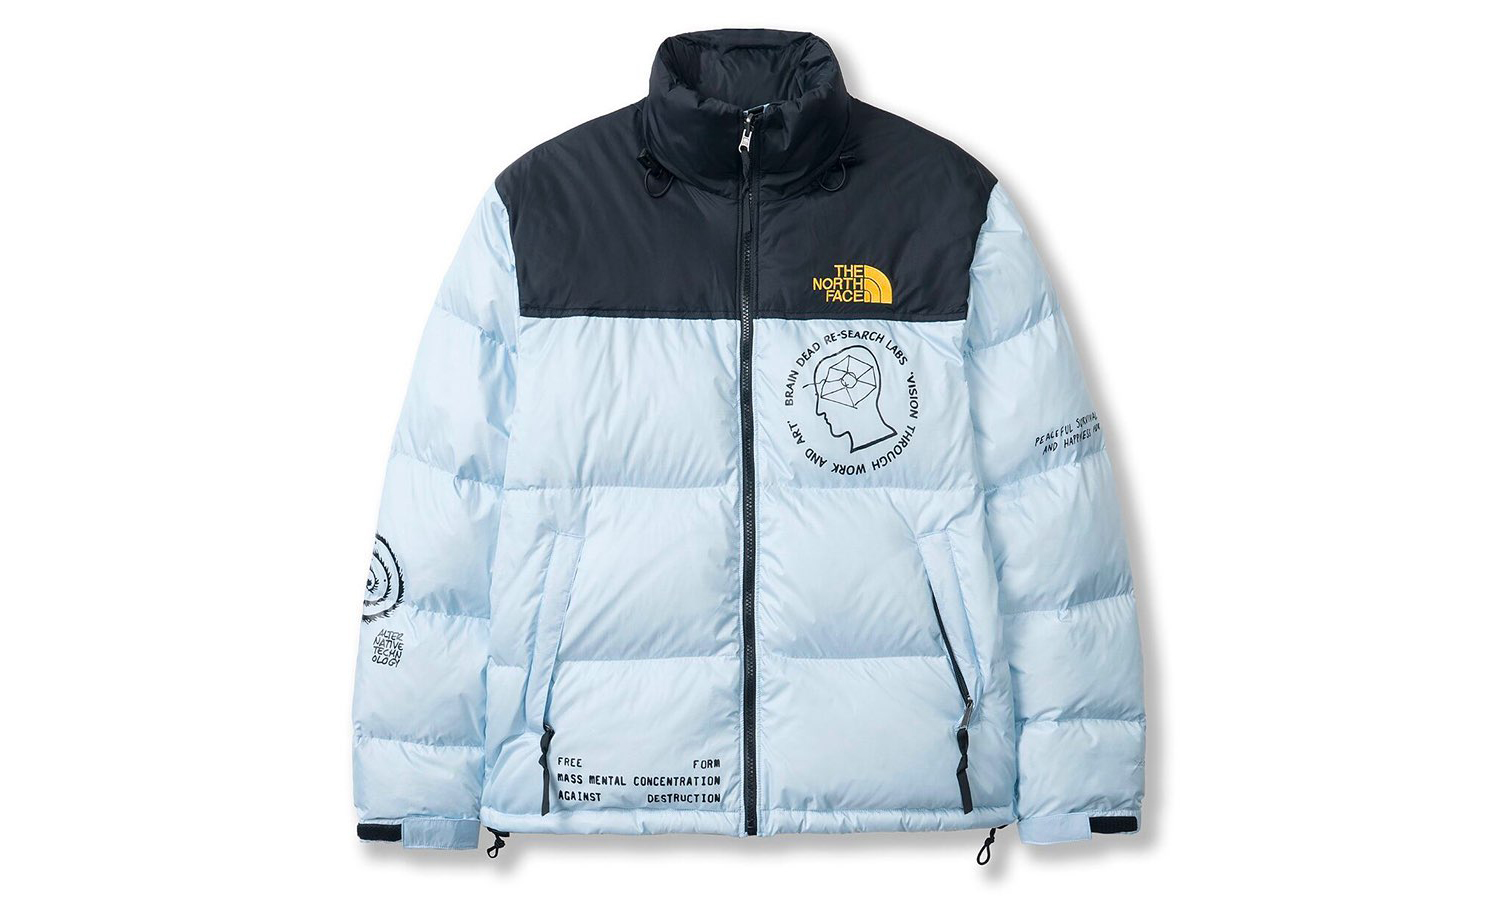 Brain Dead x THE NORTH FACE 将再度发售